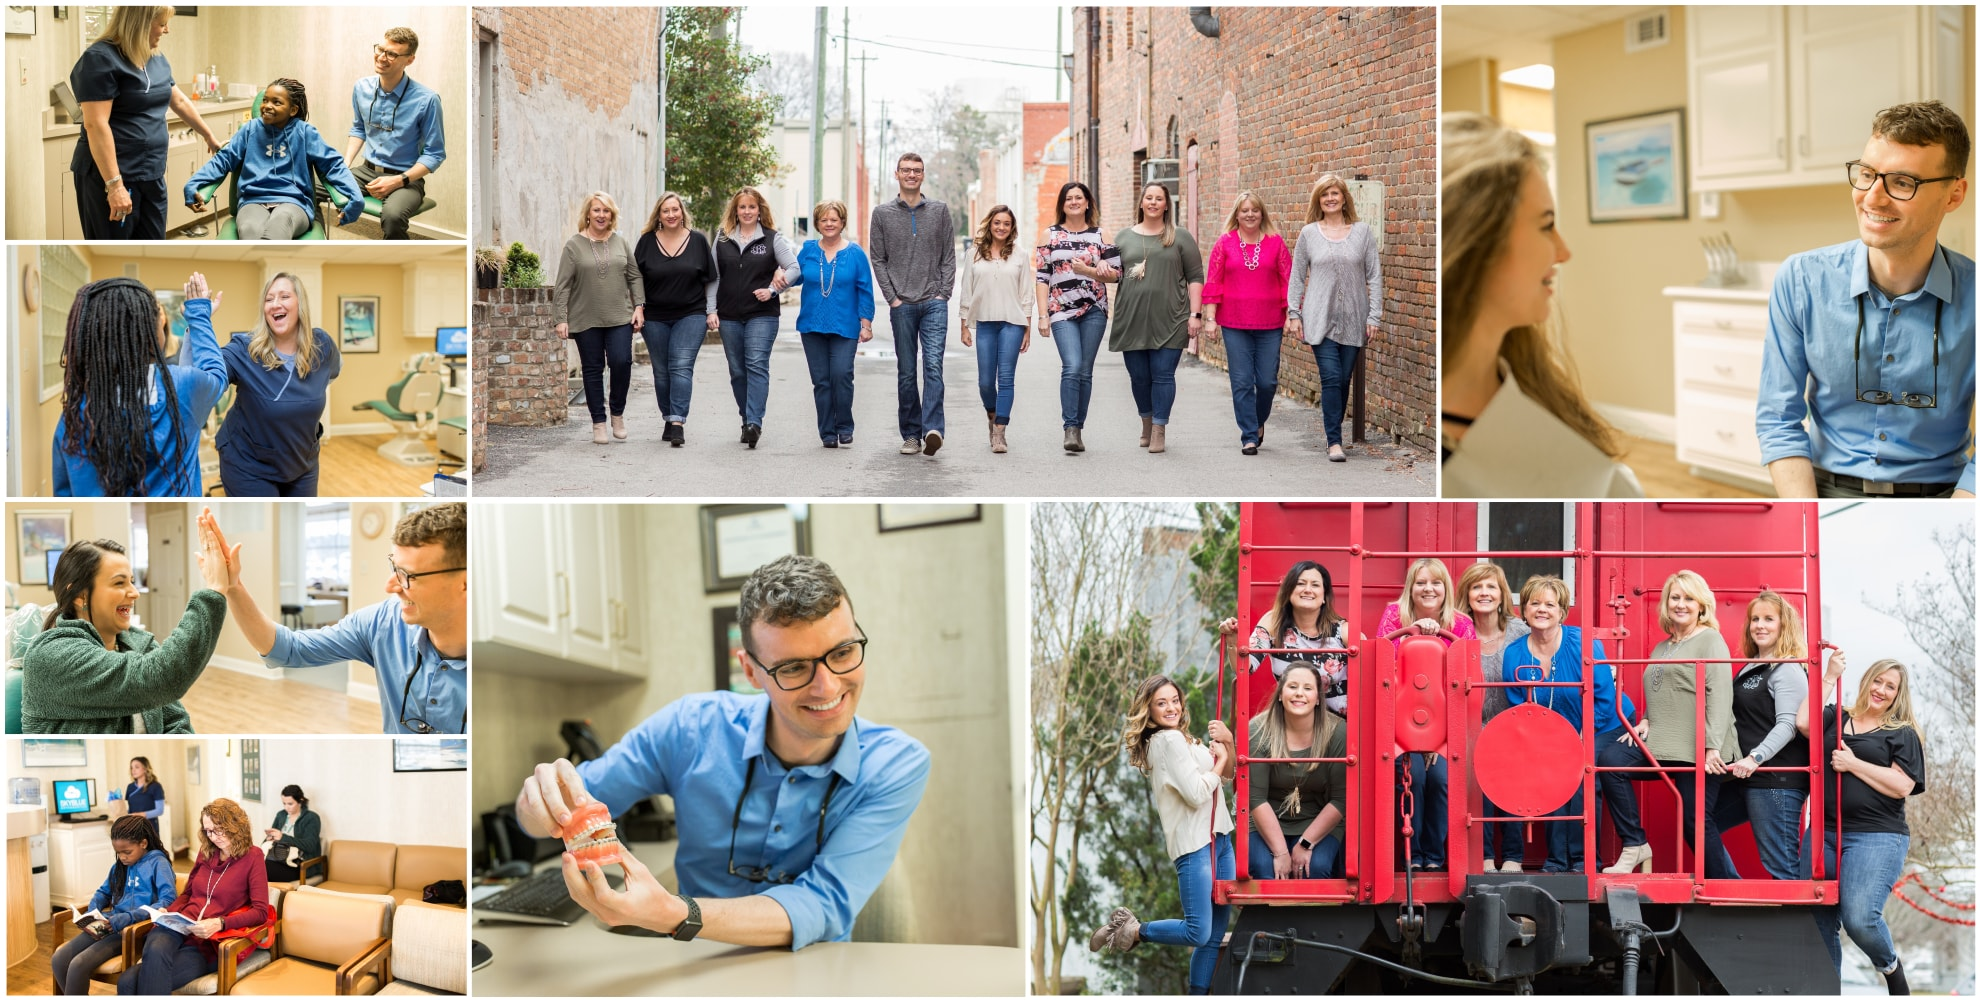 Collage of Skyblue Orthodontics welcoming new patients into their orthodontic practice